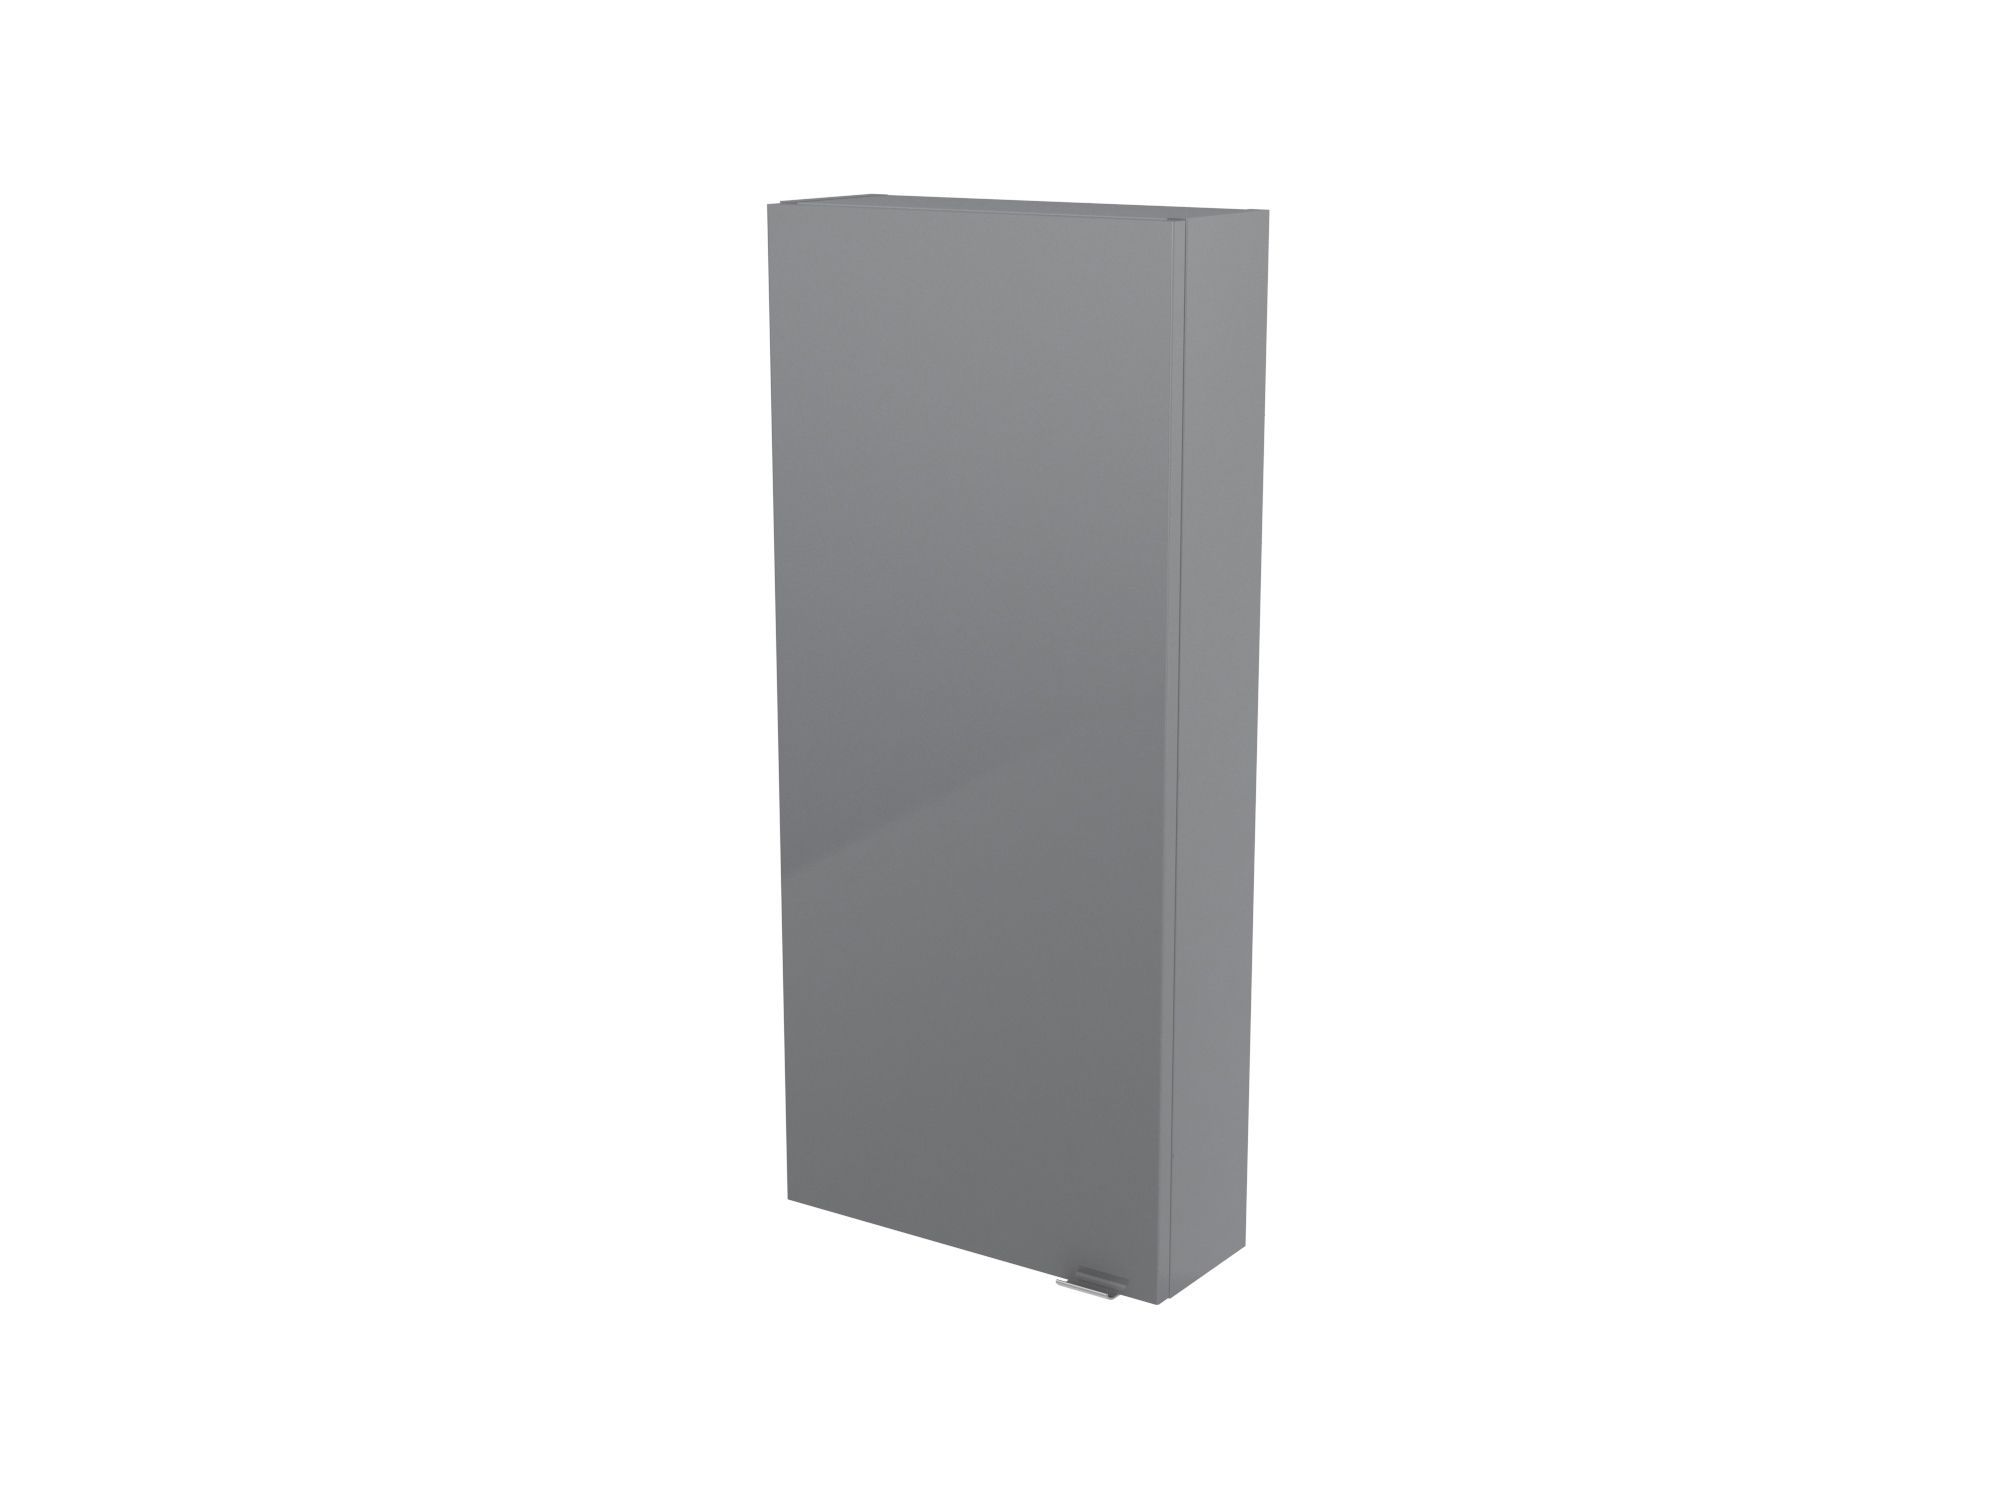 Cooke & Lewis Imandra Gloss Grey Wall Cabinet, (w)400mm